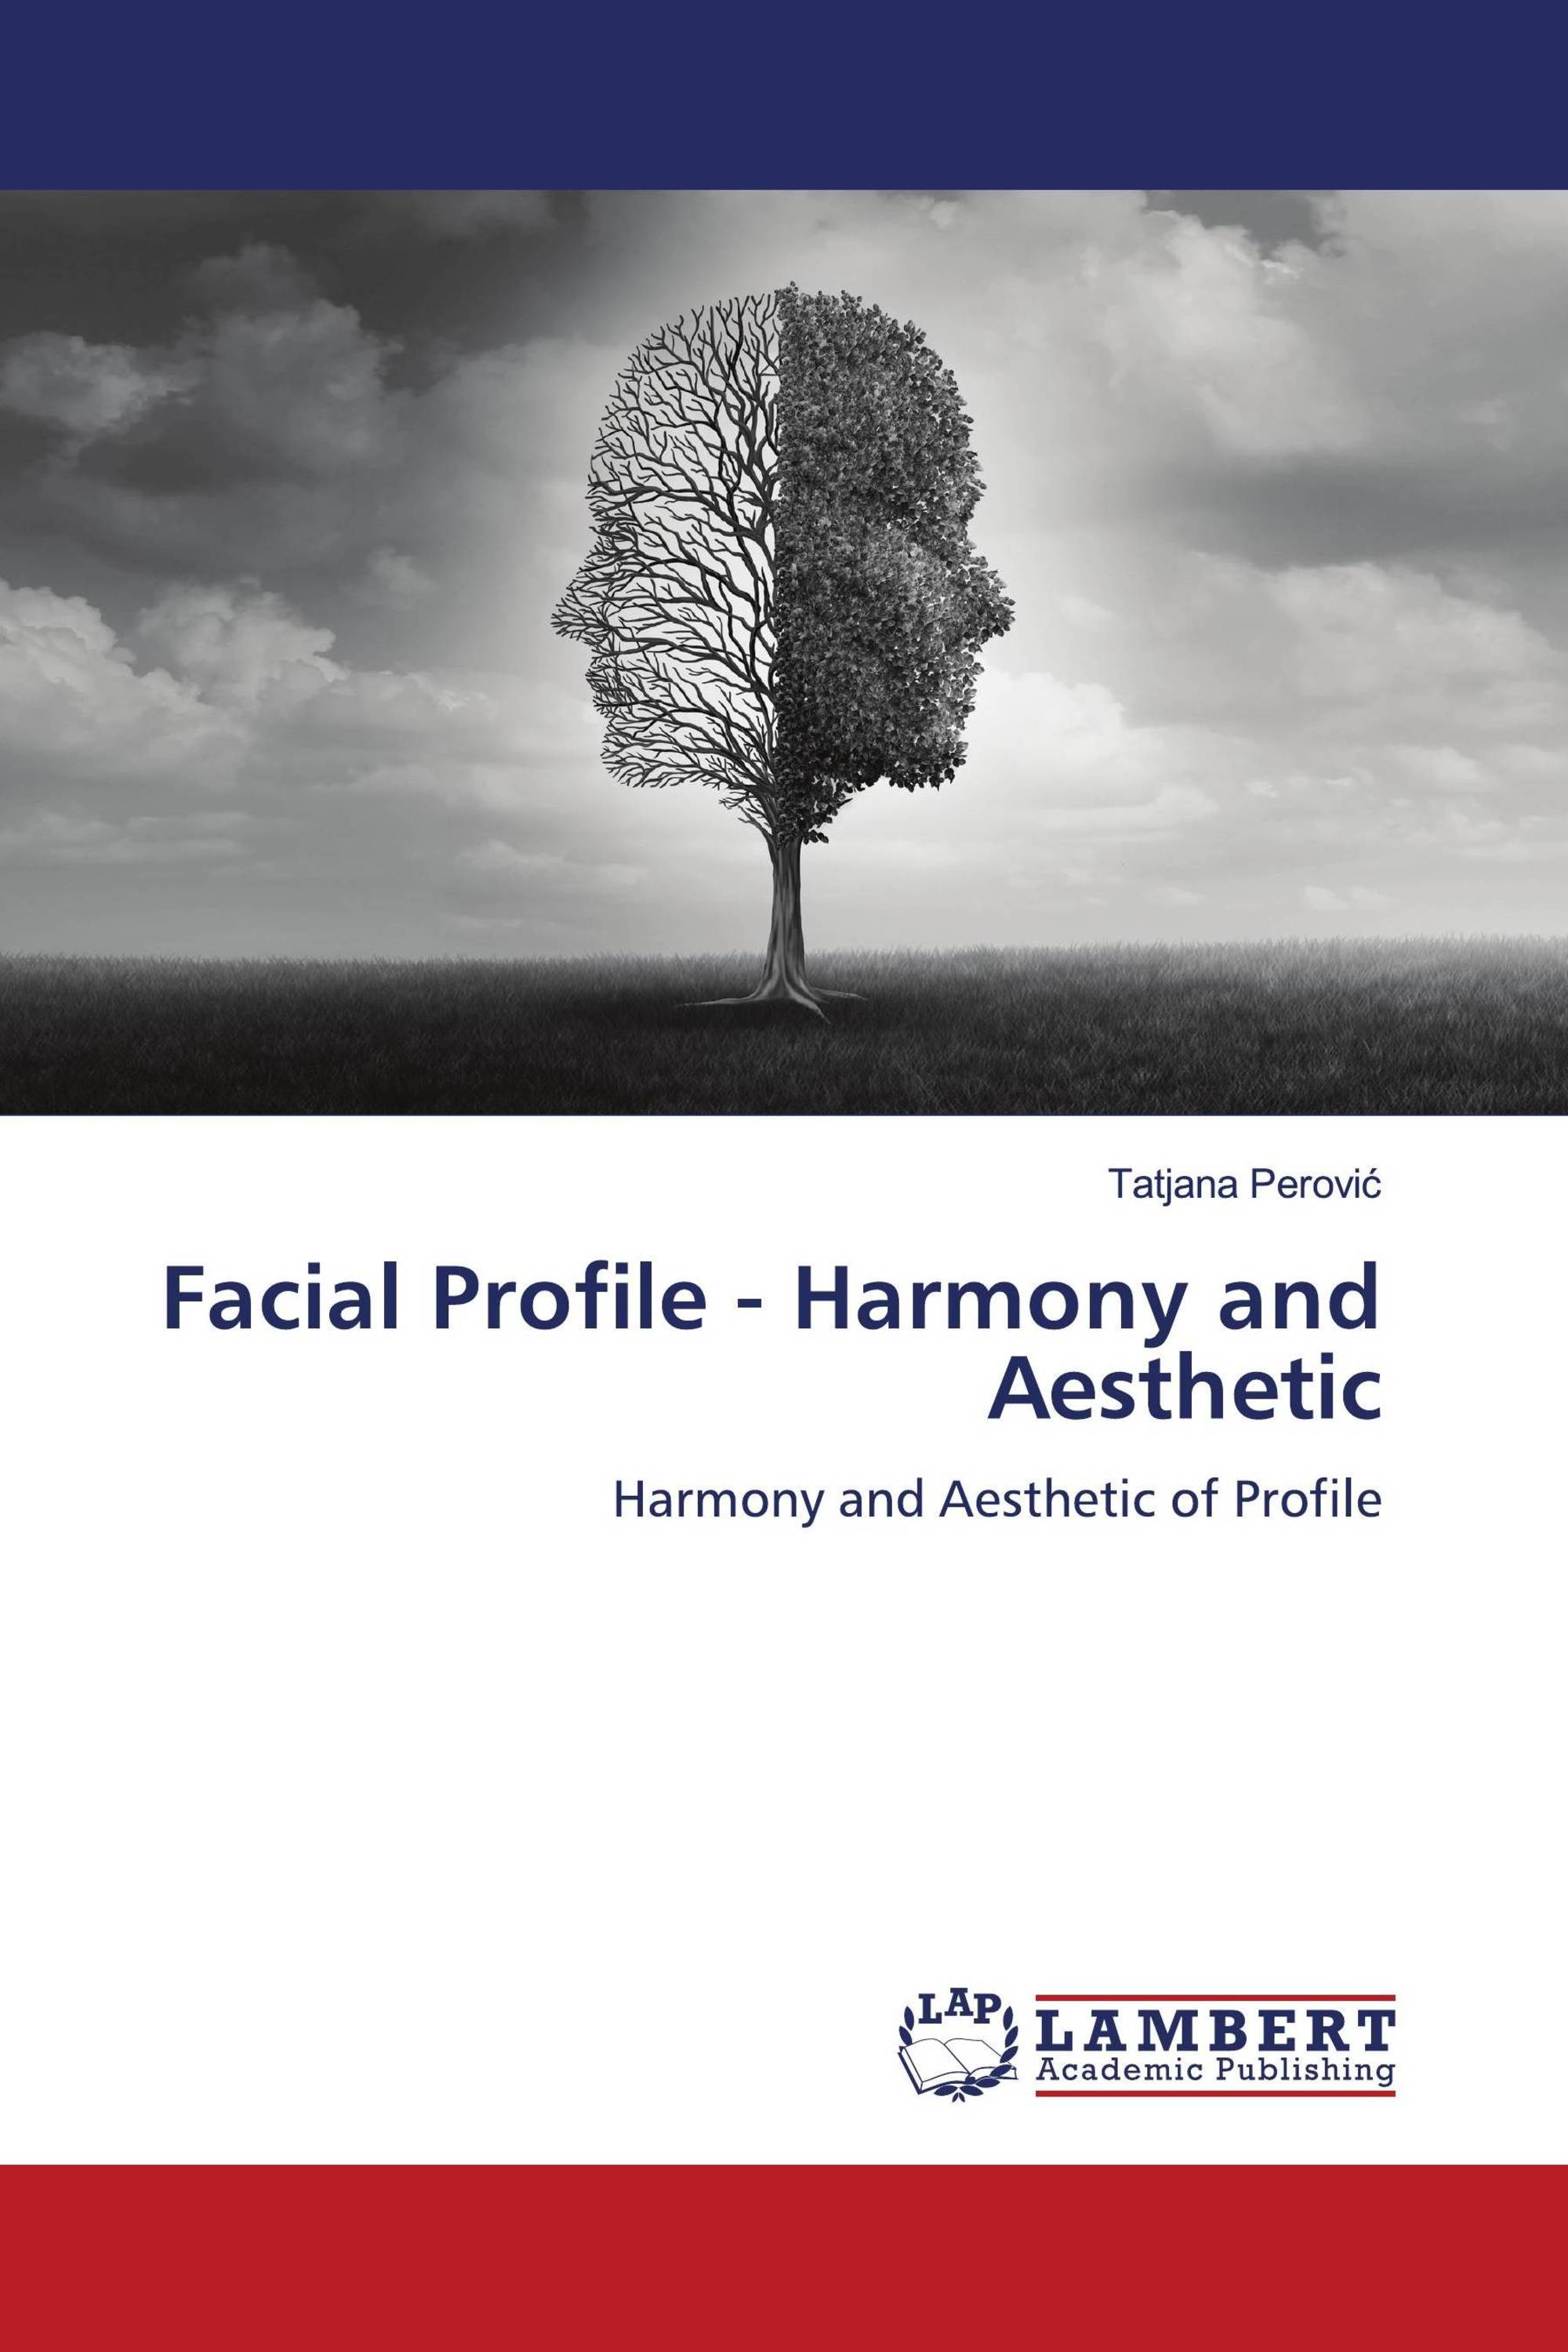 Facial Profile - Harmony and Aesthetic